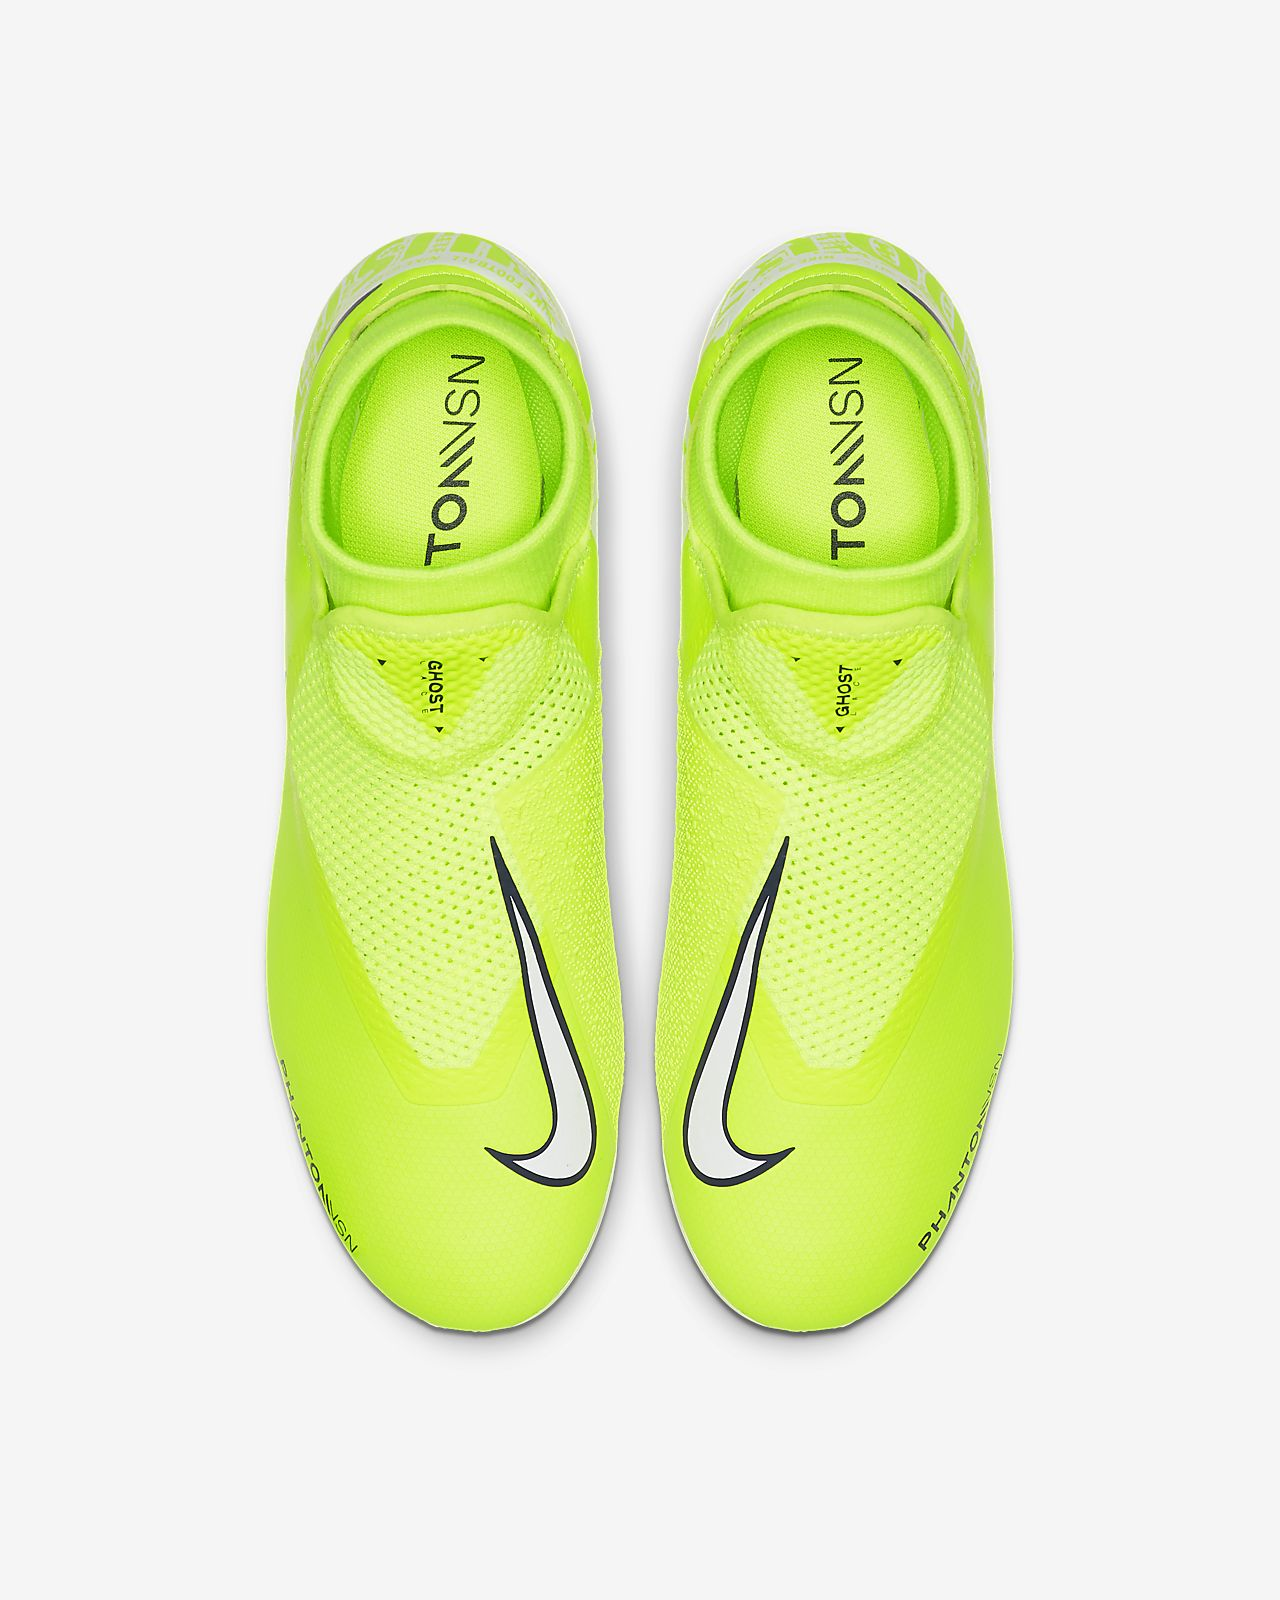 Surfaces Vision Academy À Multi Fit Football Crampons Nike Chaussure 5AjRL34